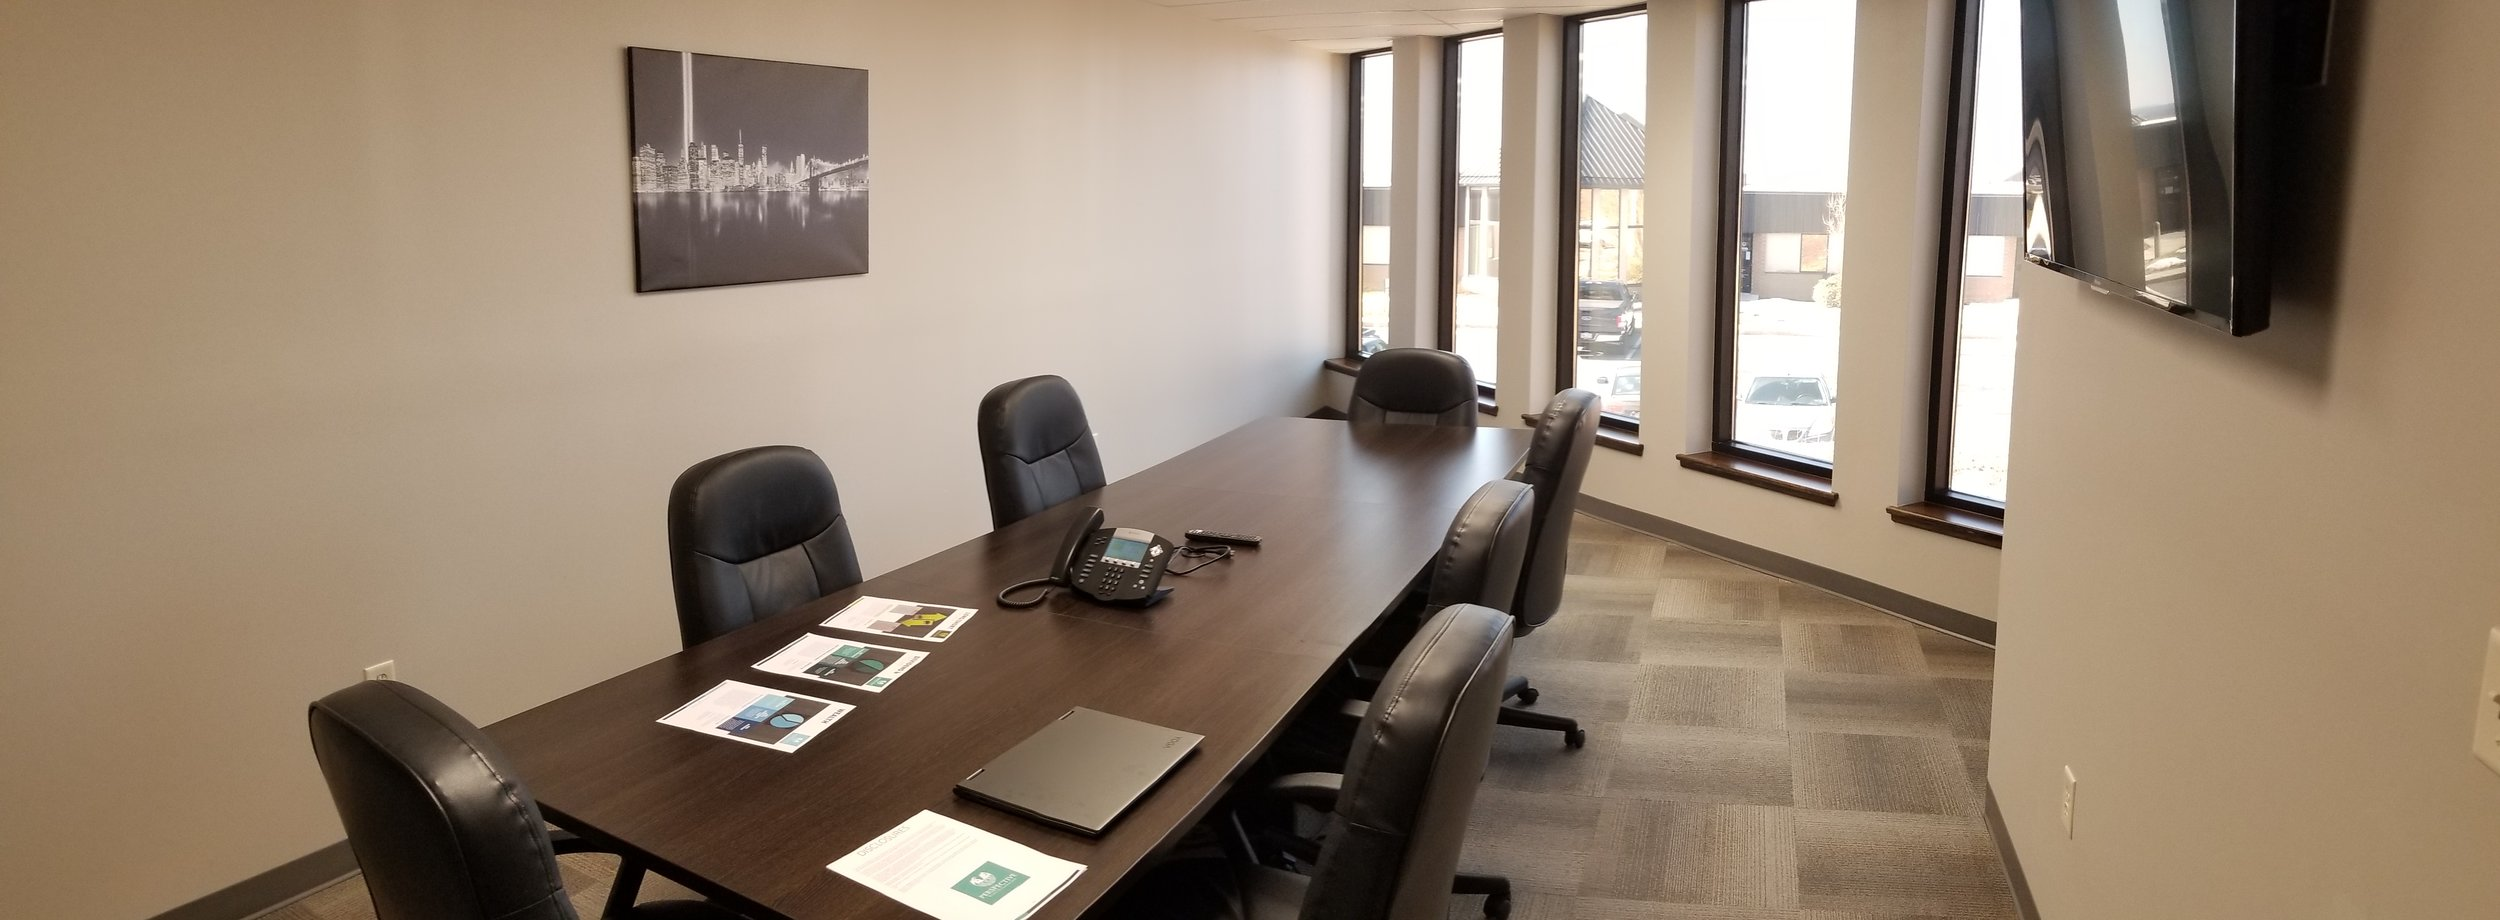 conference room pic.jpg